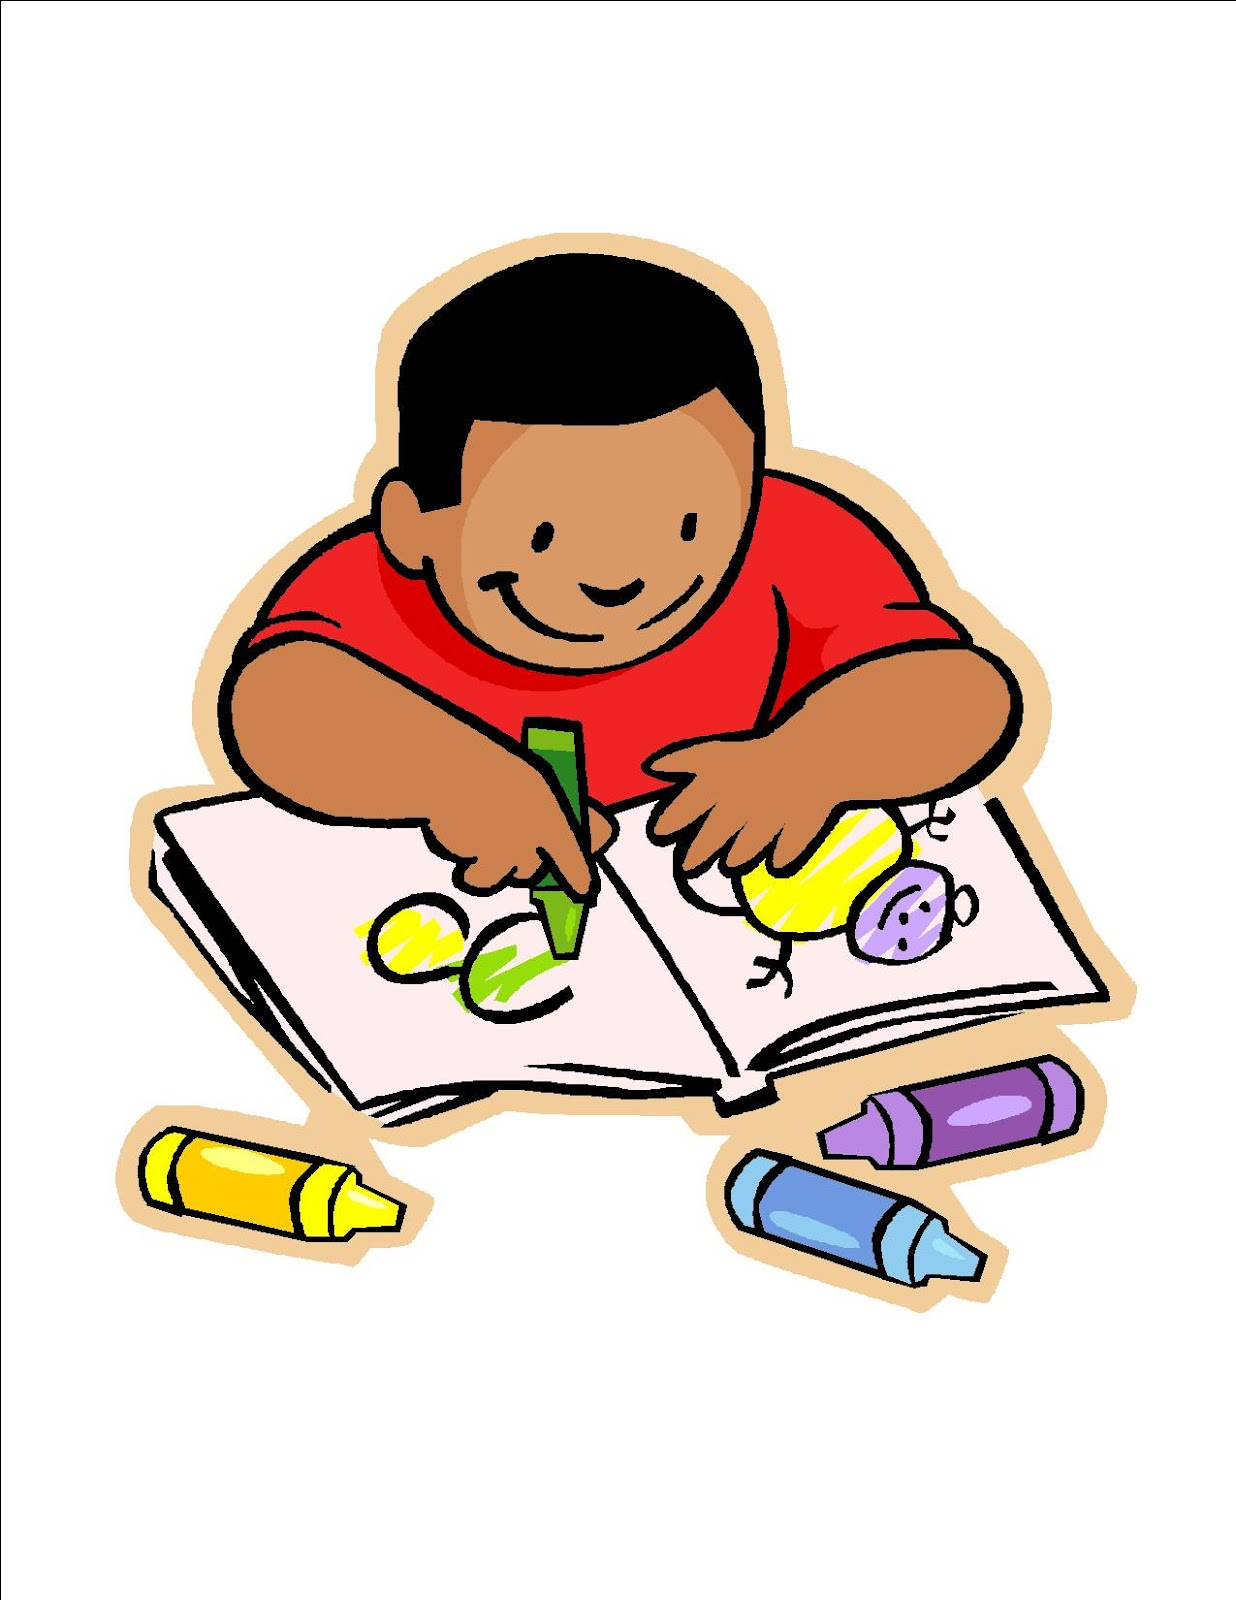 What is your favorite class clipart.